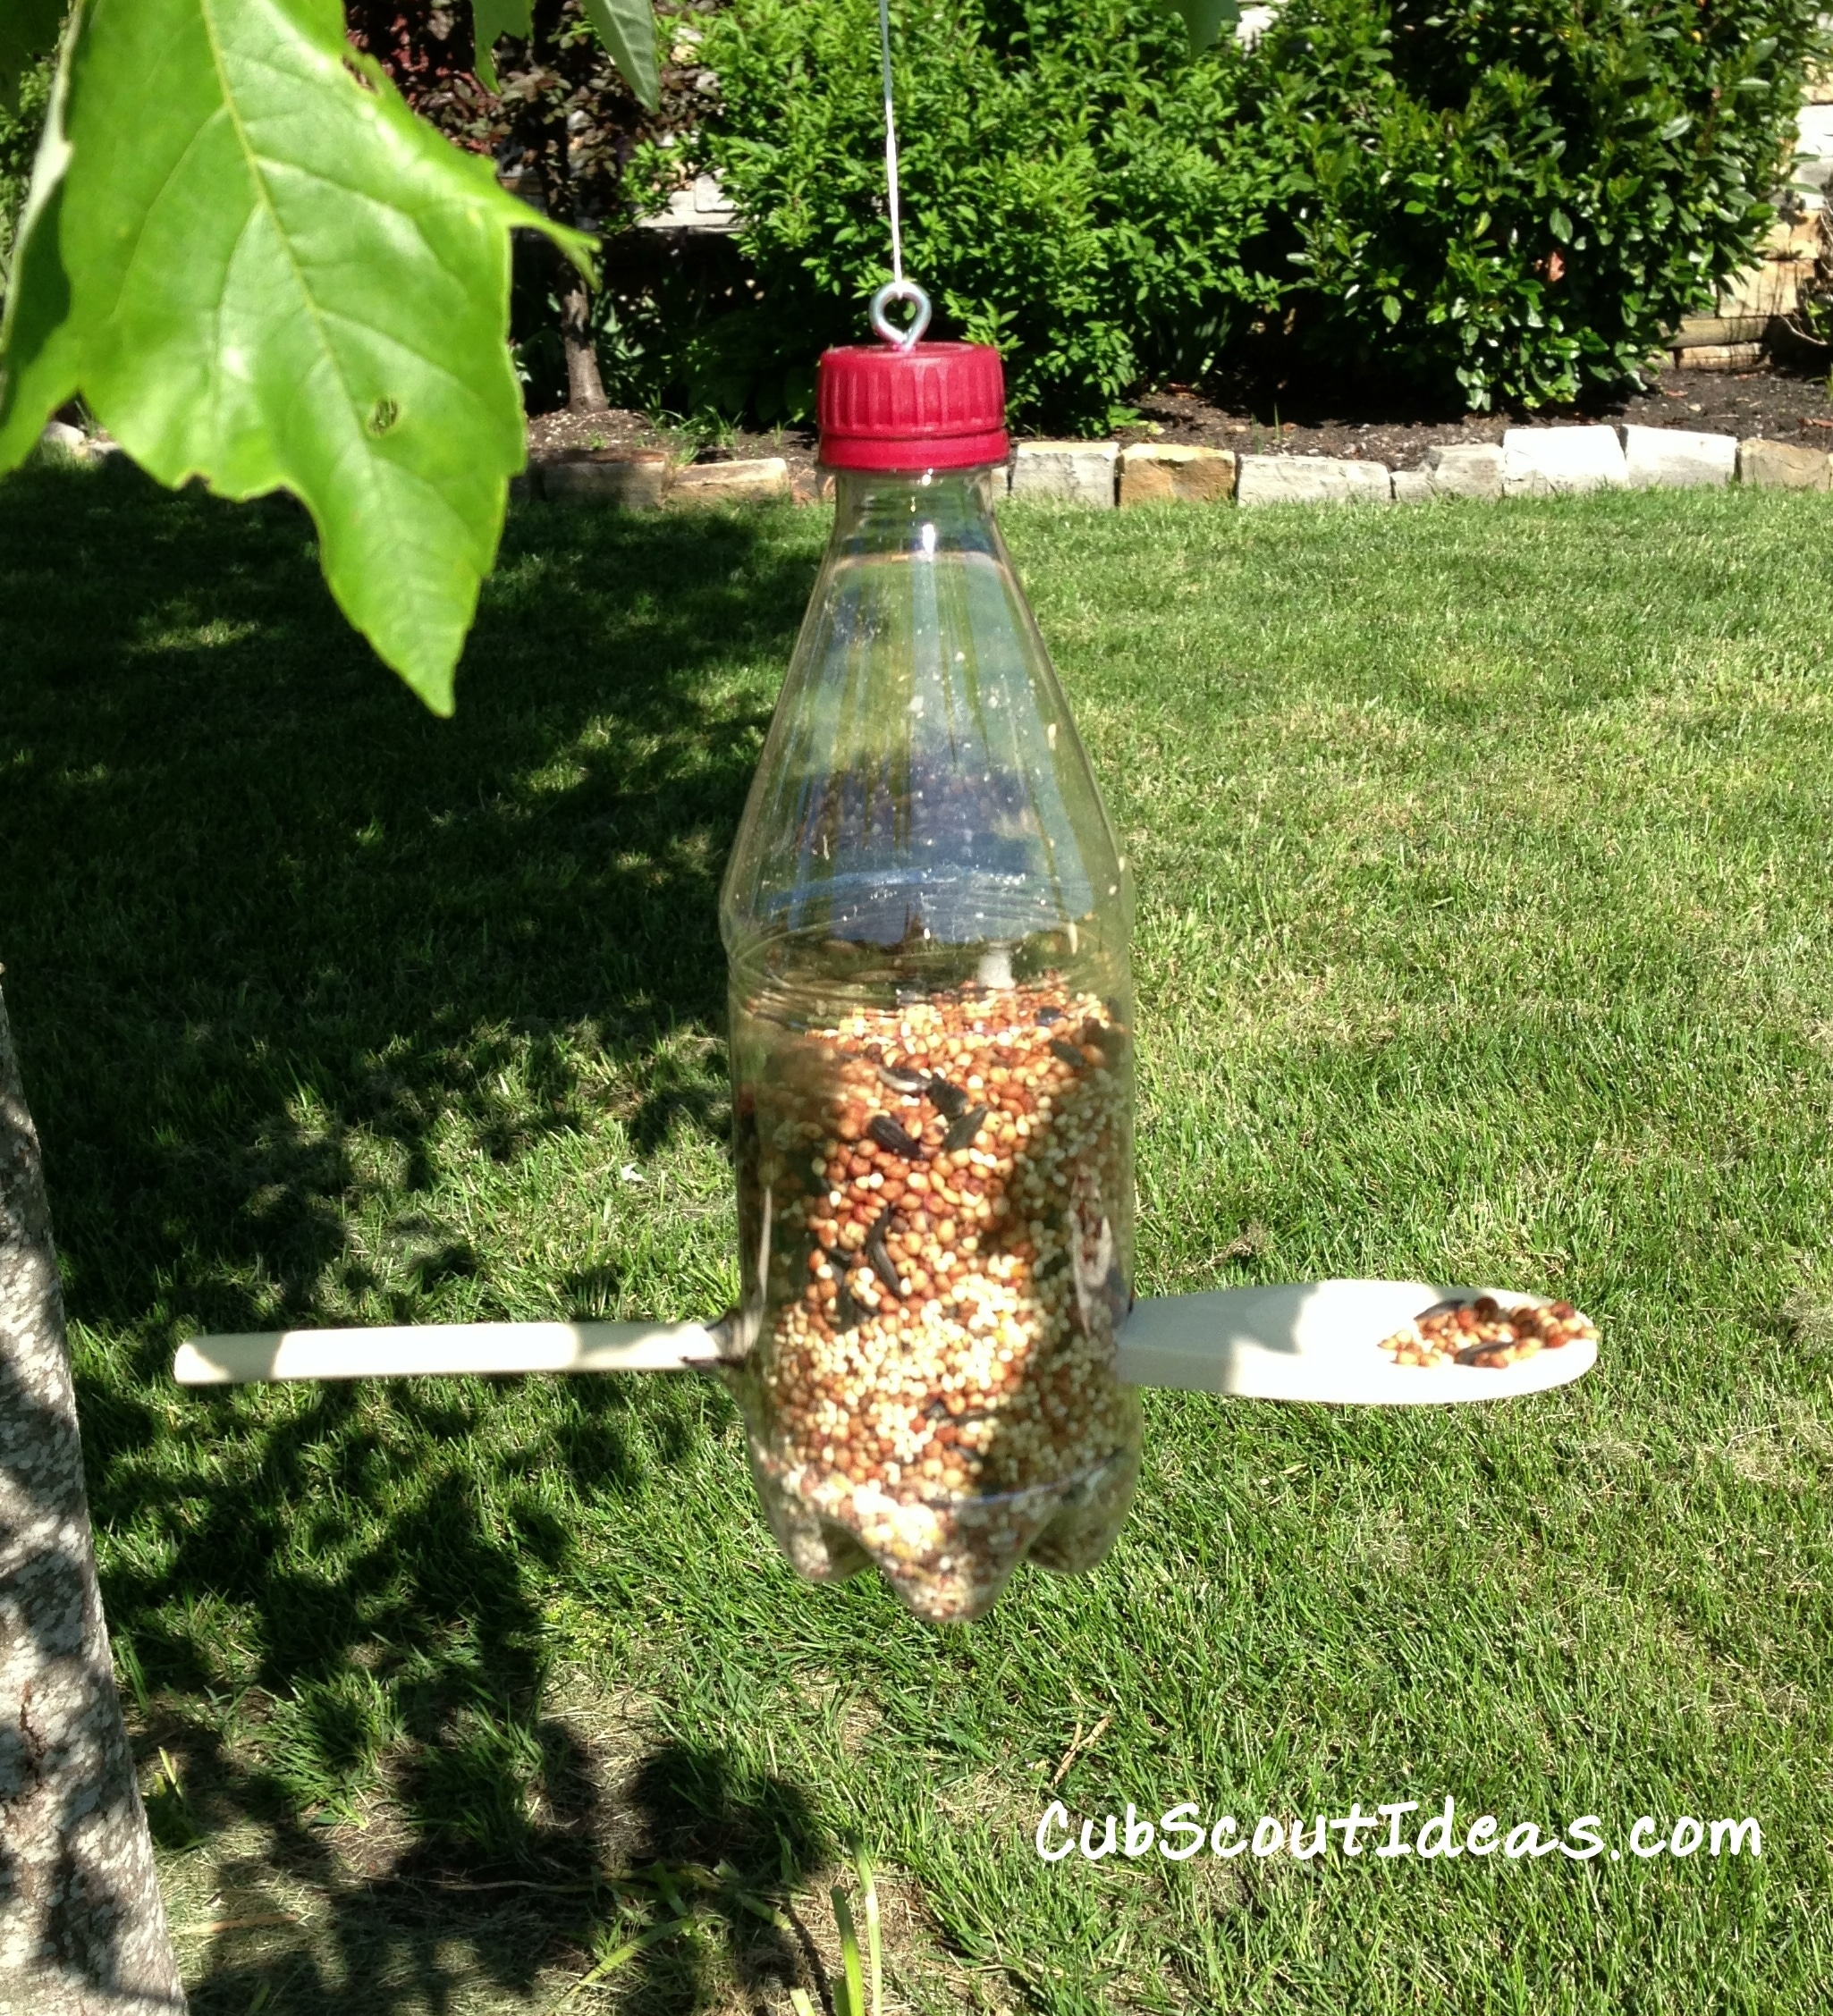 Cub scouts bird feeders for kids to make cub scout ideas for Plastic bottle bird house